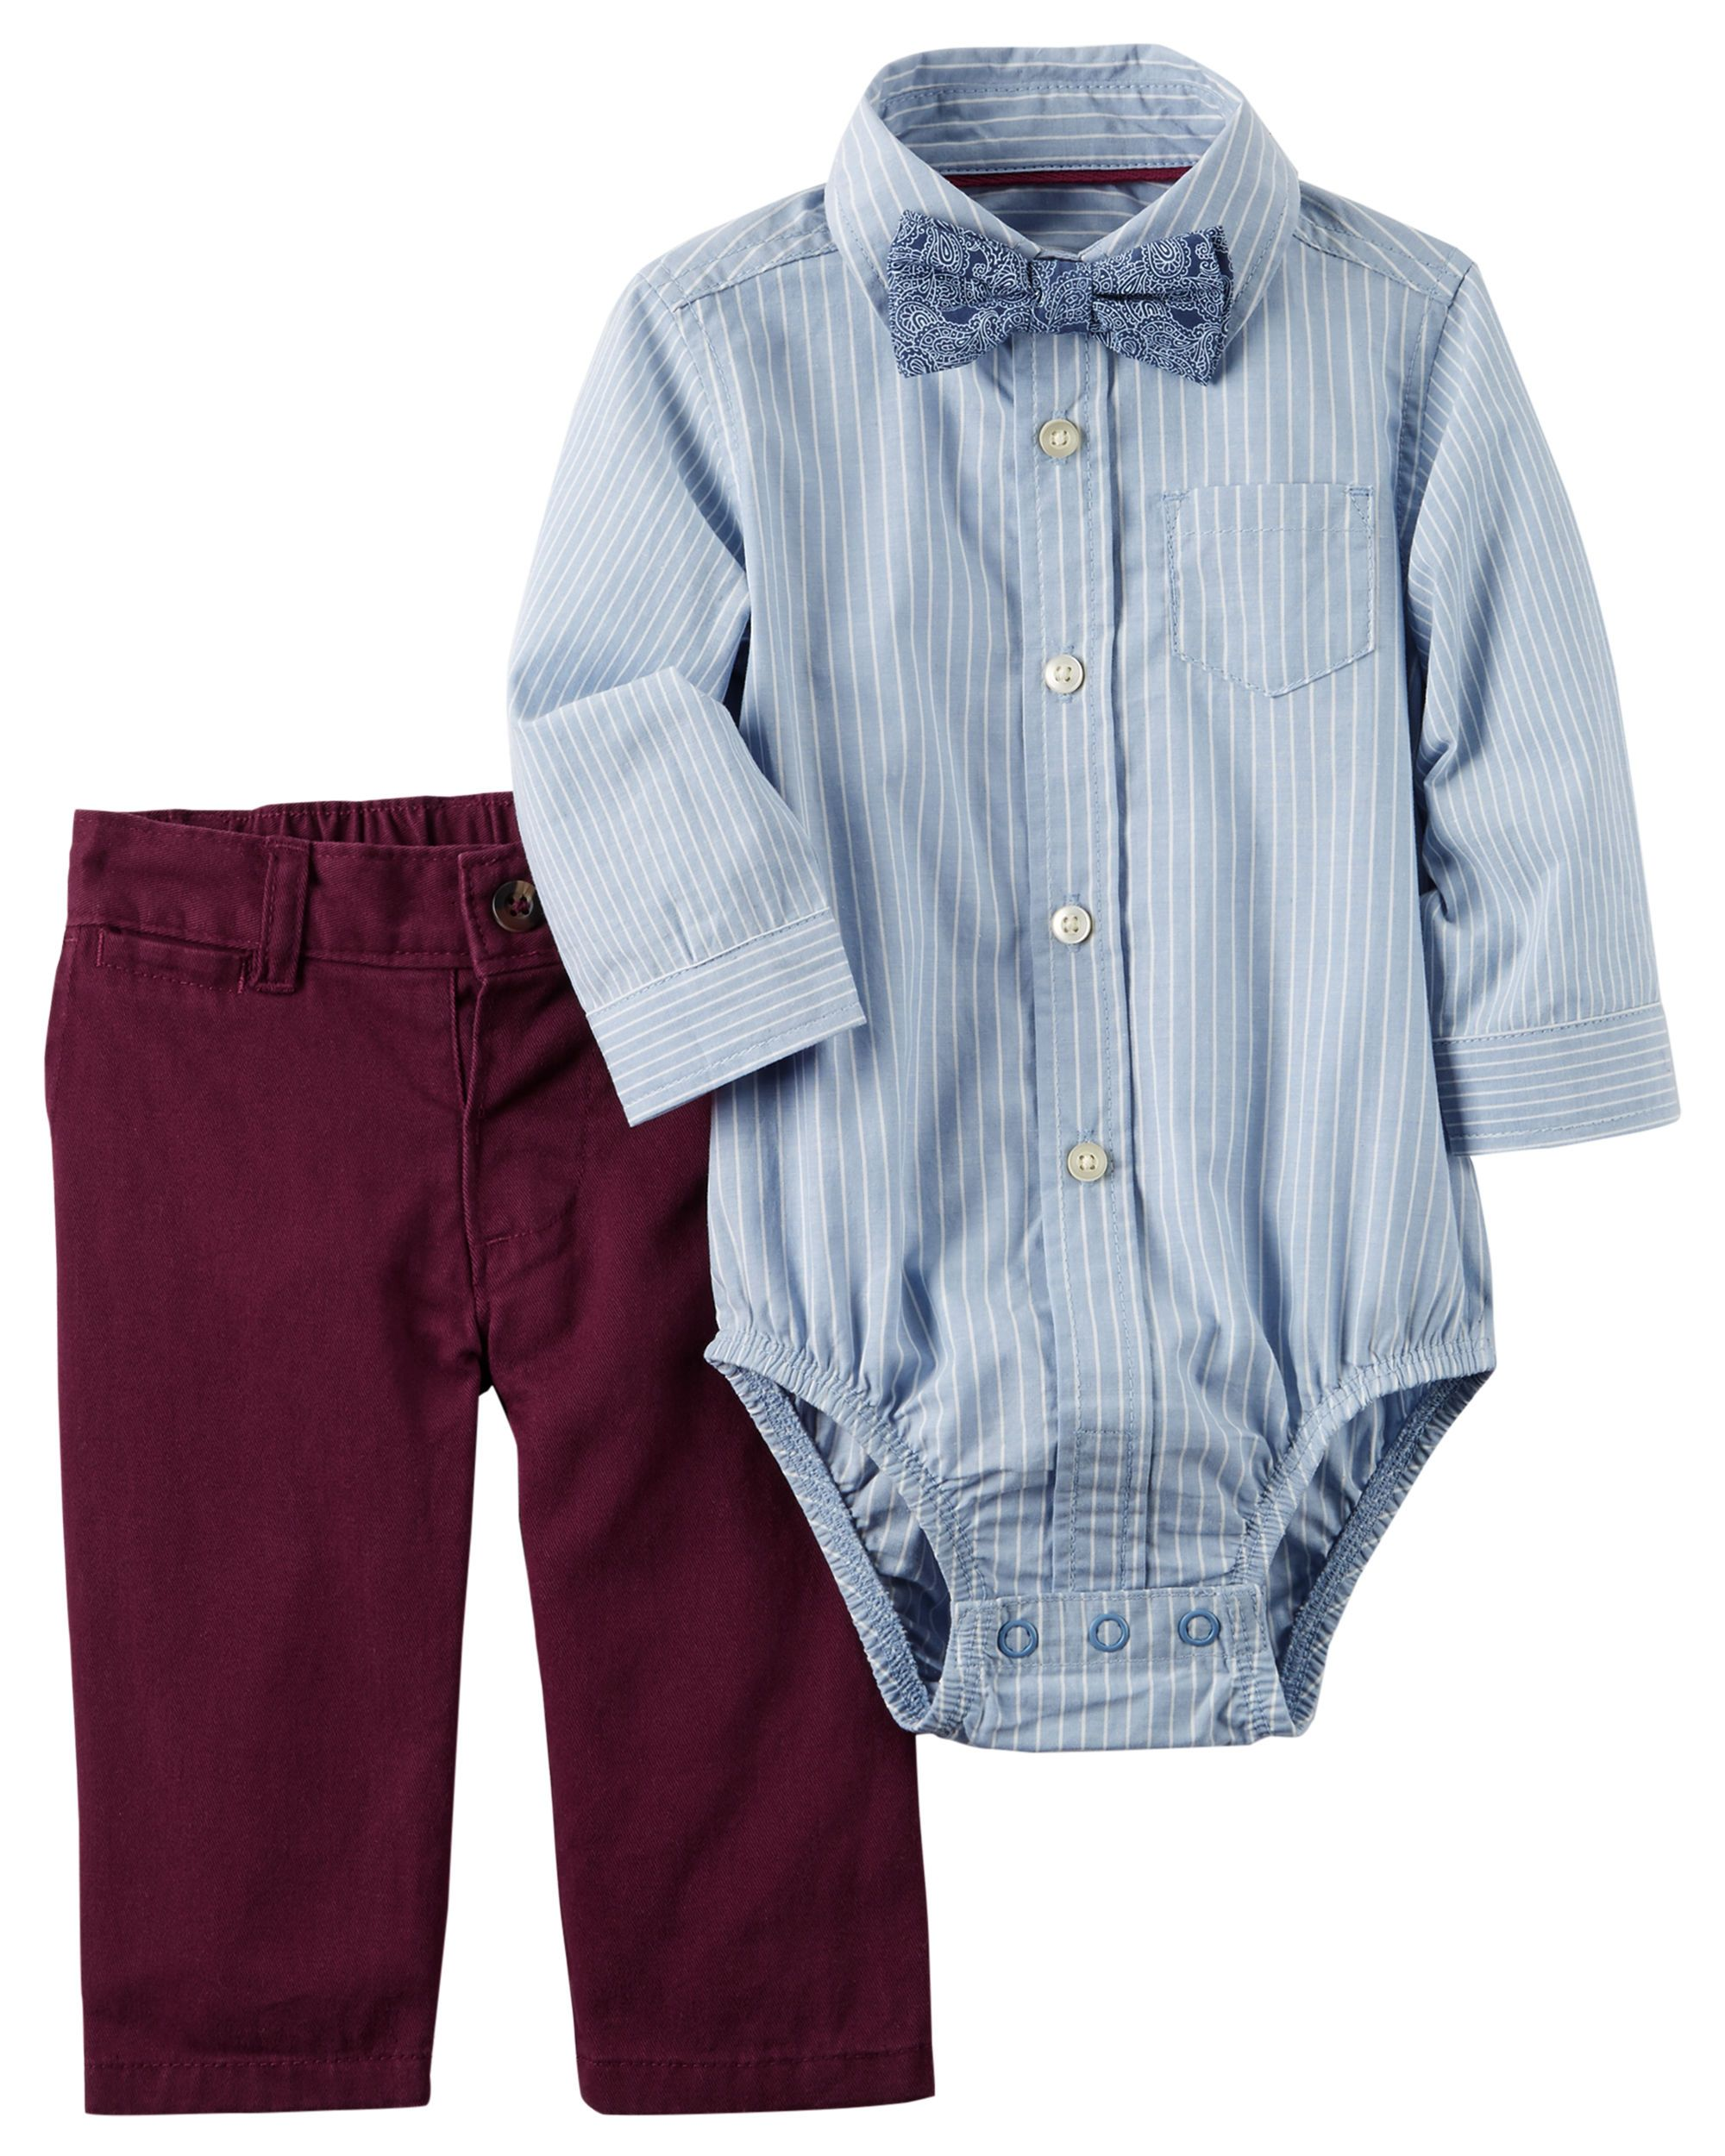 ceb49761da82 Featuring a handsome bow tie, this bodysuit and pant set is picture perfect  for holiday parties.